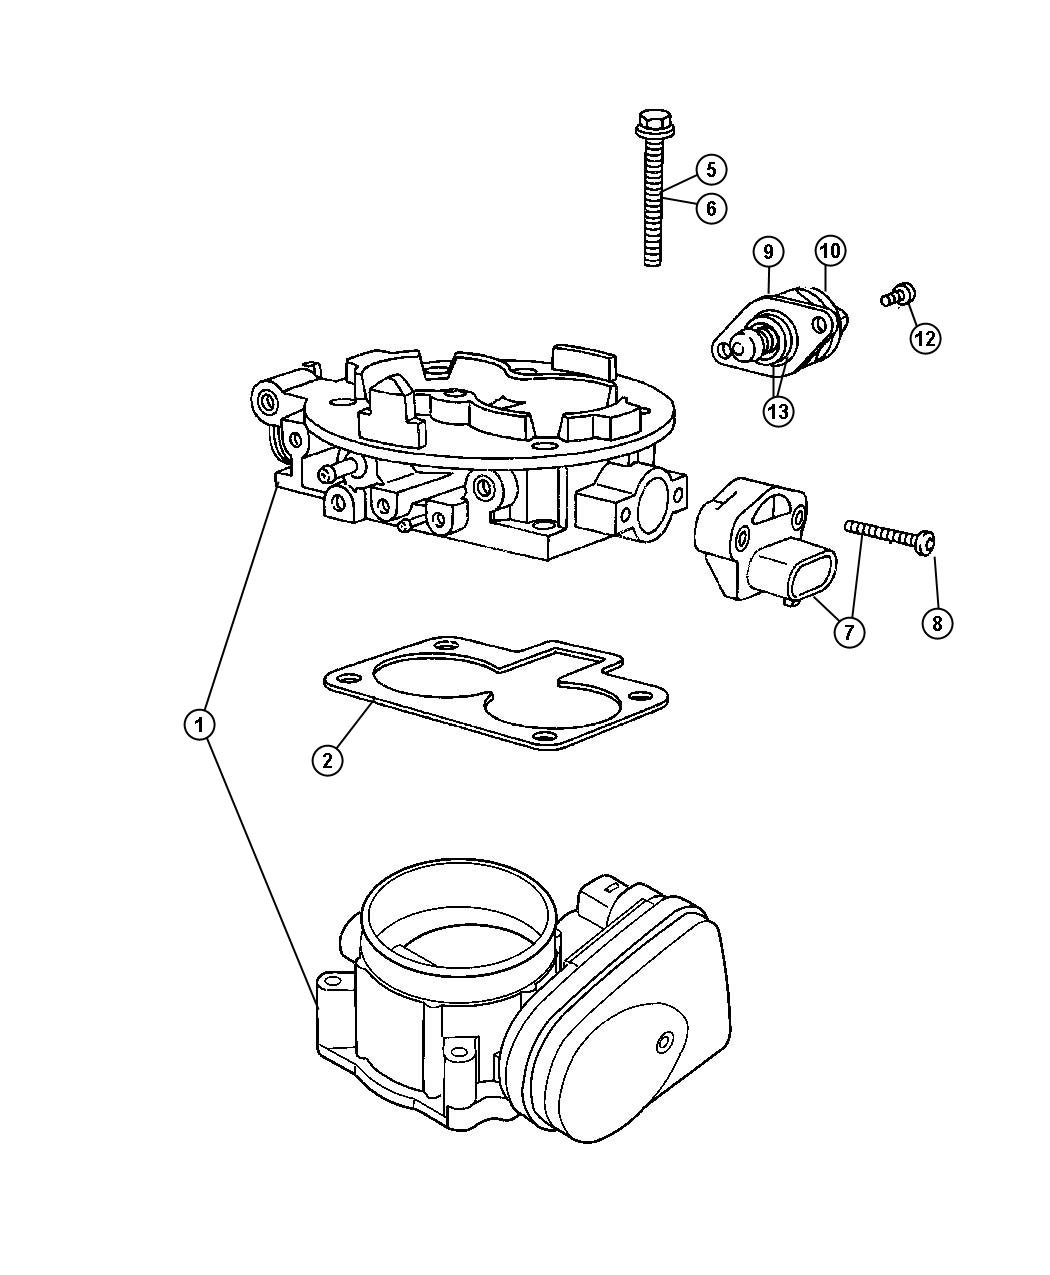 Dodge Ram 1500 Motor kit. A.i.s. Up to 8/23/04, up to 8/24